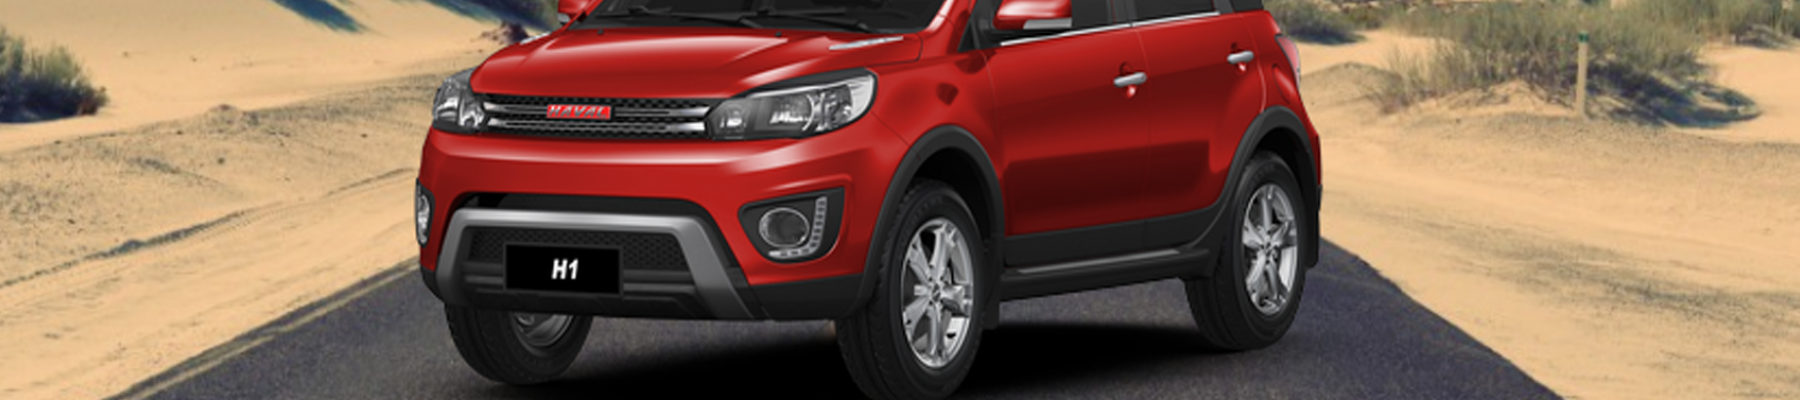 HAVAL SUV Dealership Pretoria